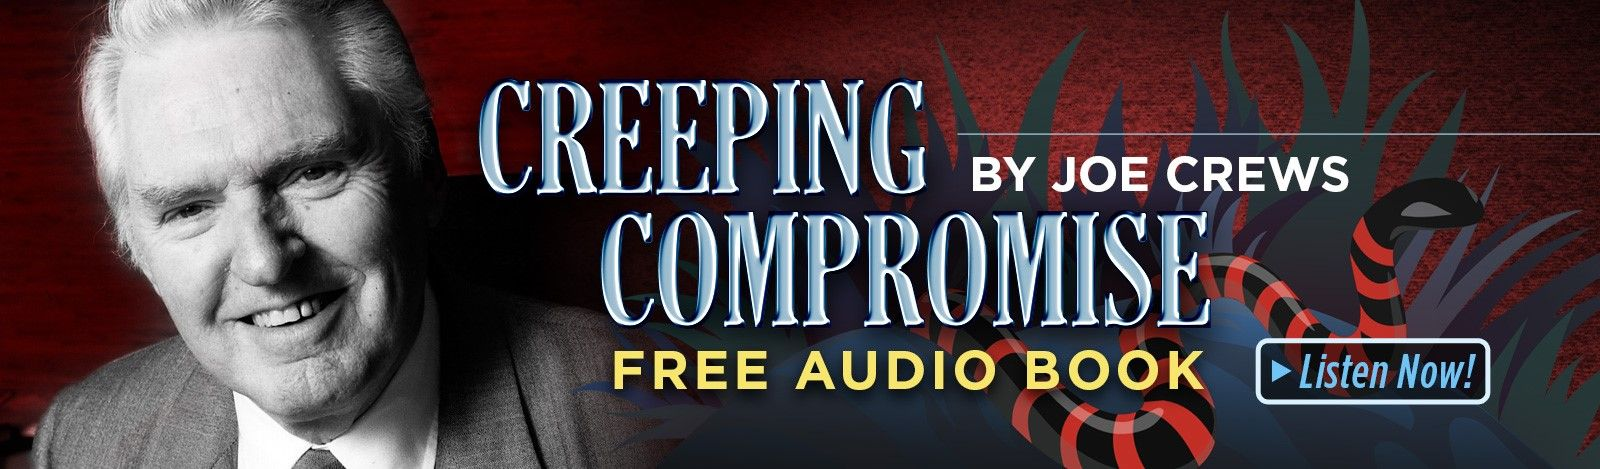 Free Creeping Compromise Audio Book!